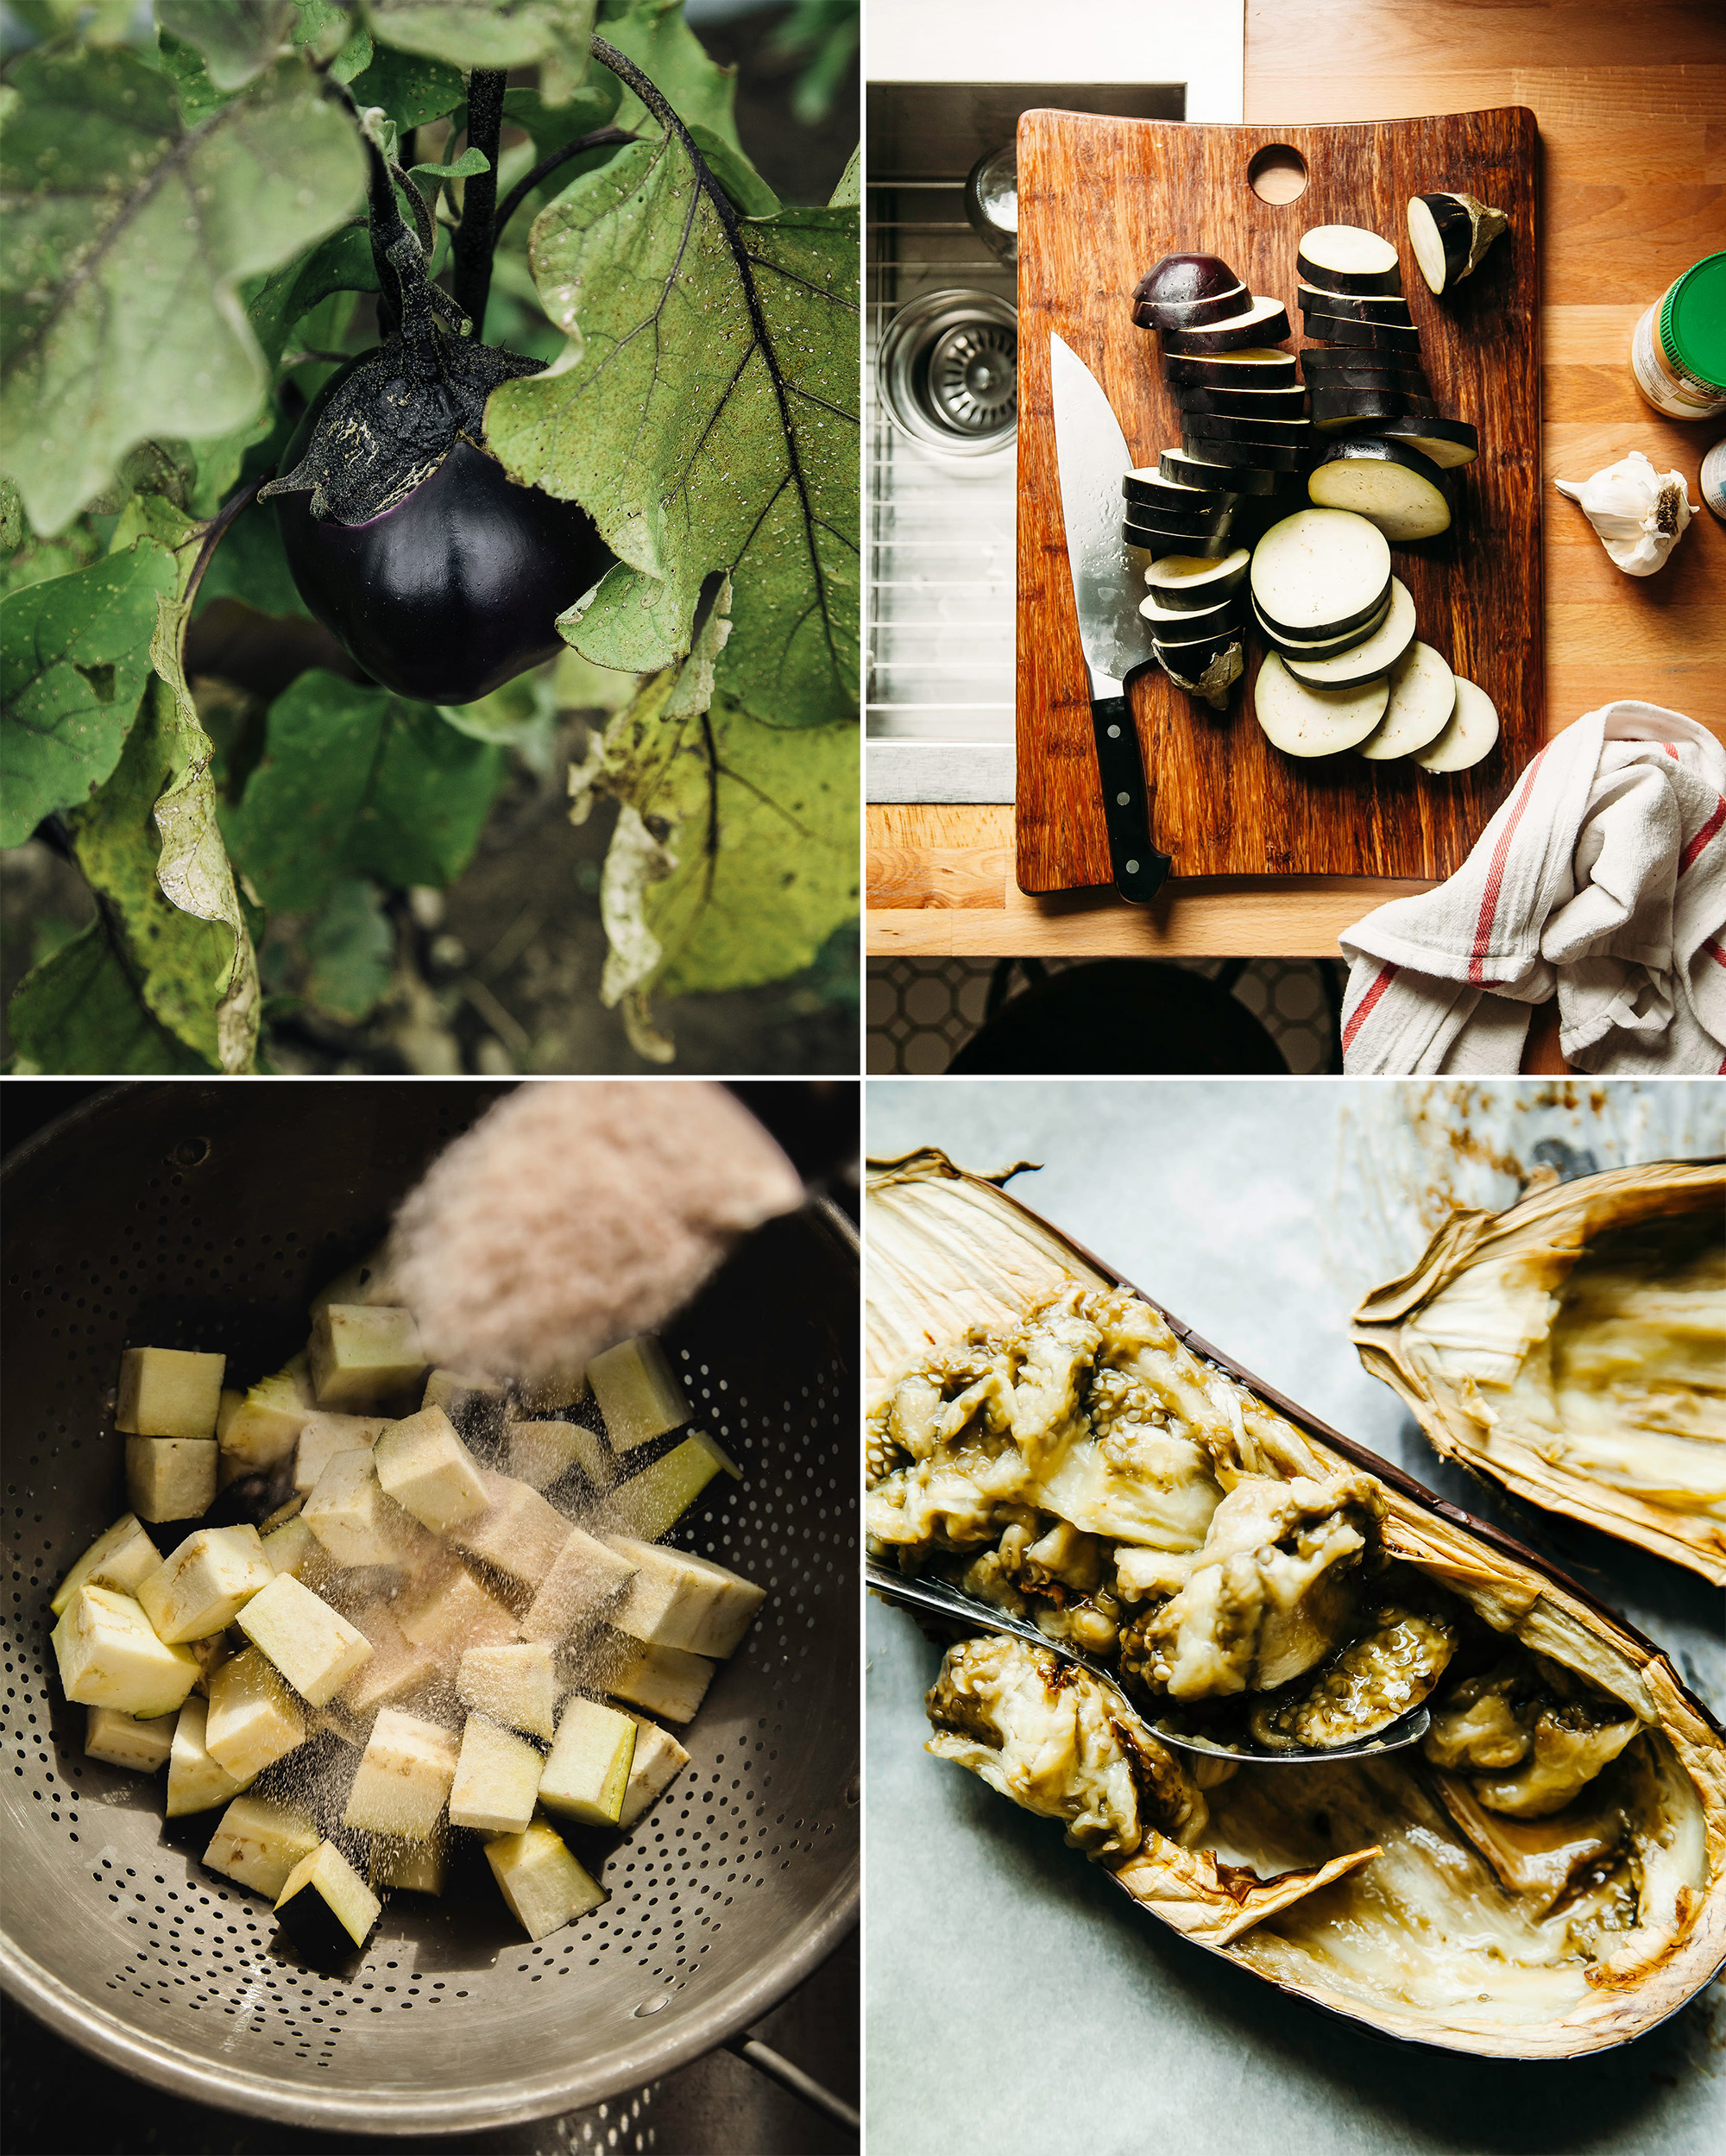 Four images in a grid show the following: eggplant growing from a plant in a garden, slices of eggplant on a cutting board, cubes of eggplant being sprinkled with salt, and a cooked eggplant half being scooped out with a spoon.